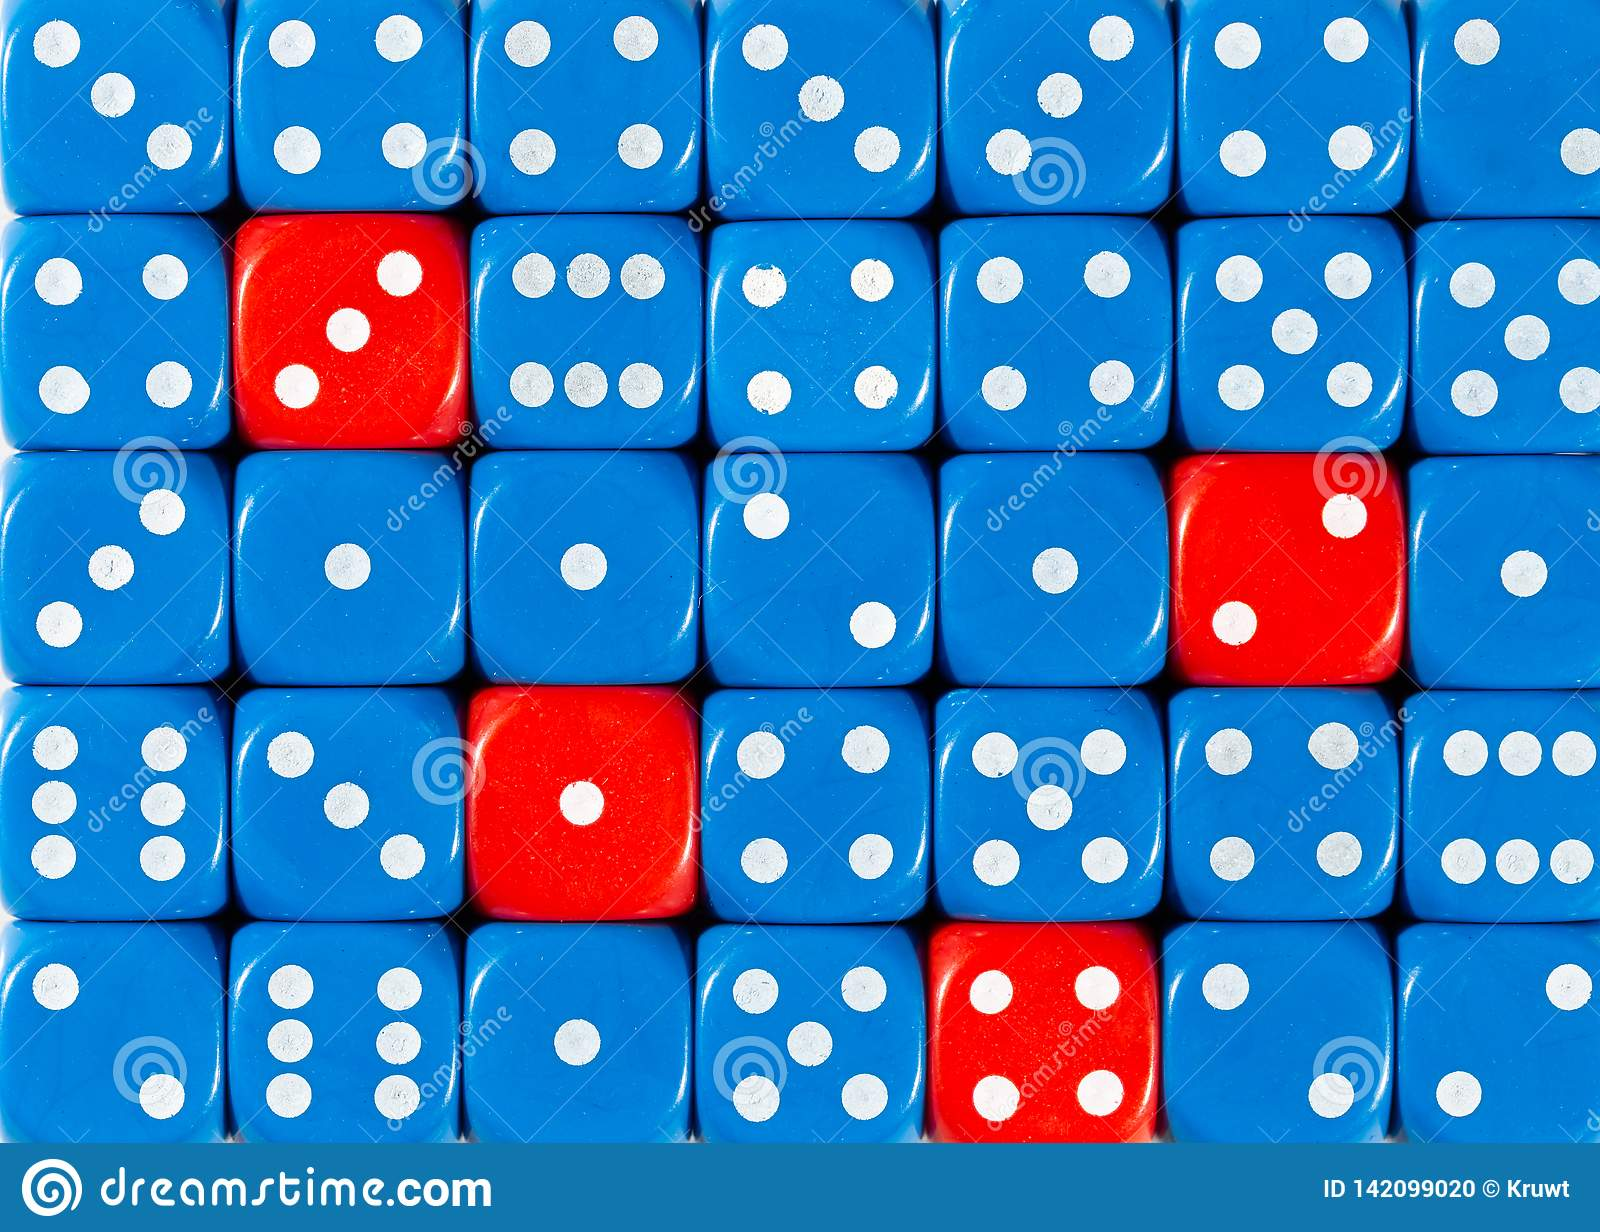 Background of random ordered blue dices with four red cubes